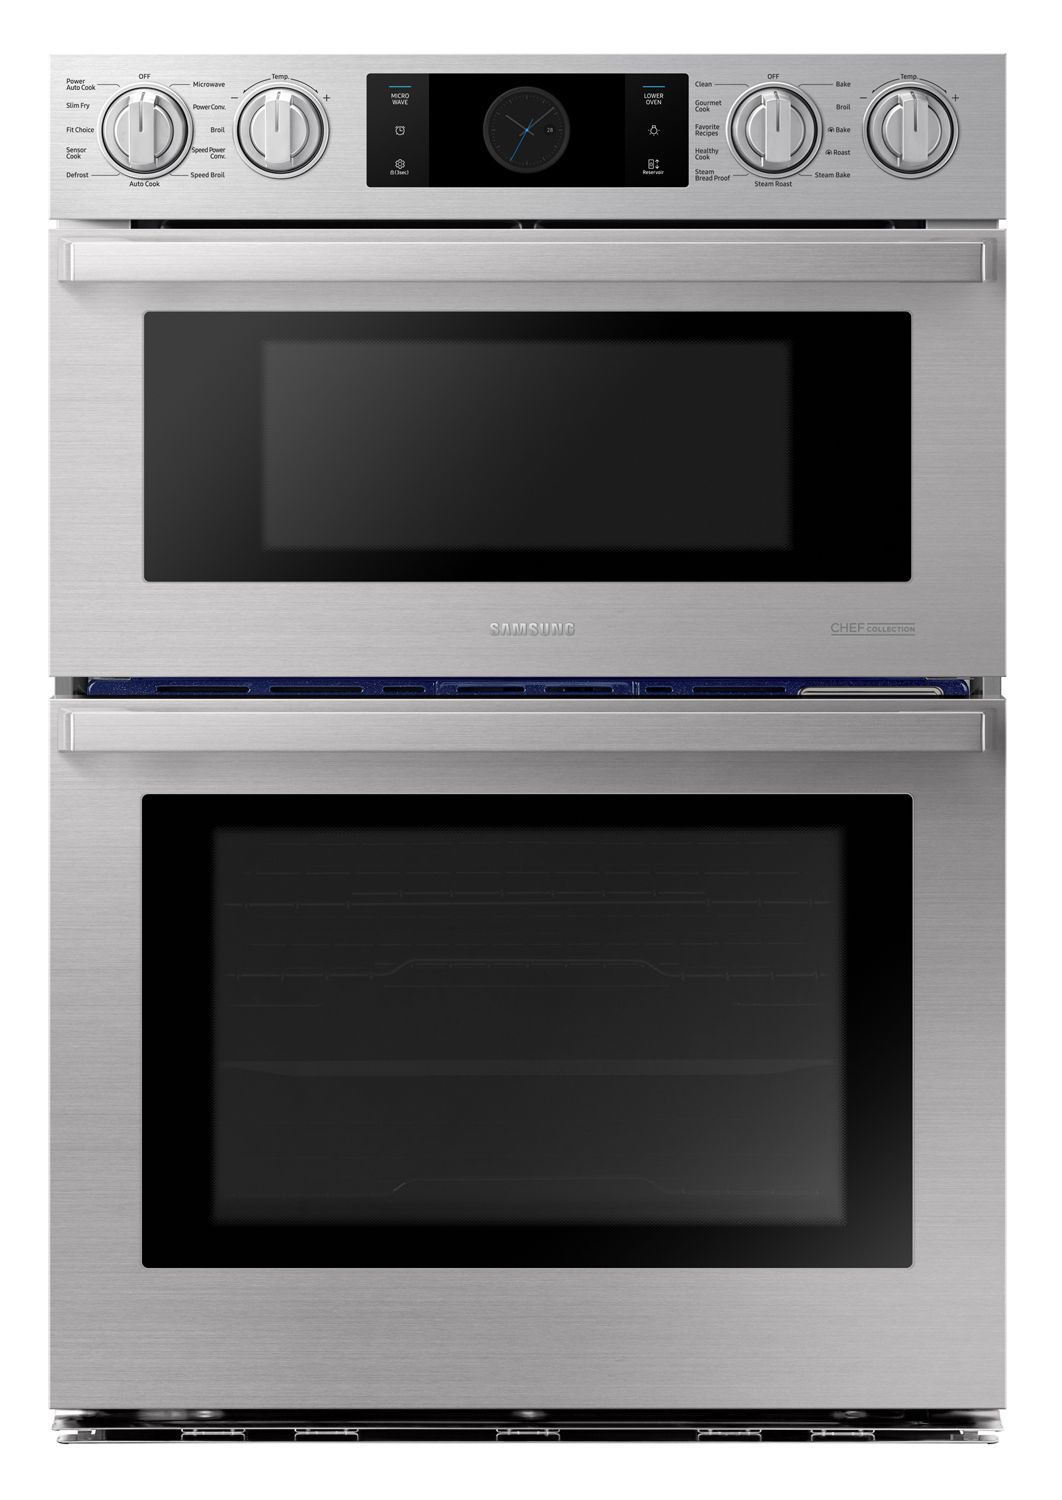 Samsung Chef Microwave Combination Wall Oven Nq70m9770ds